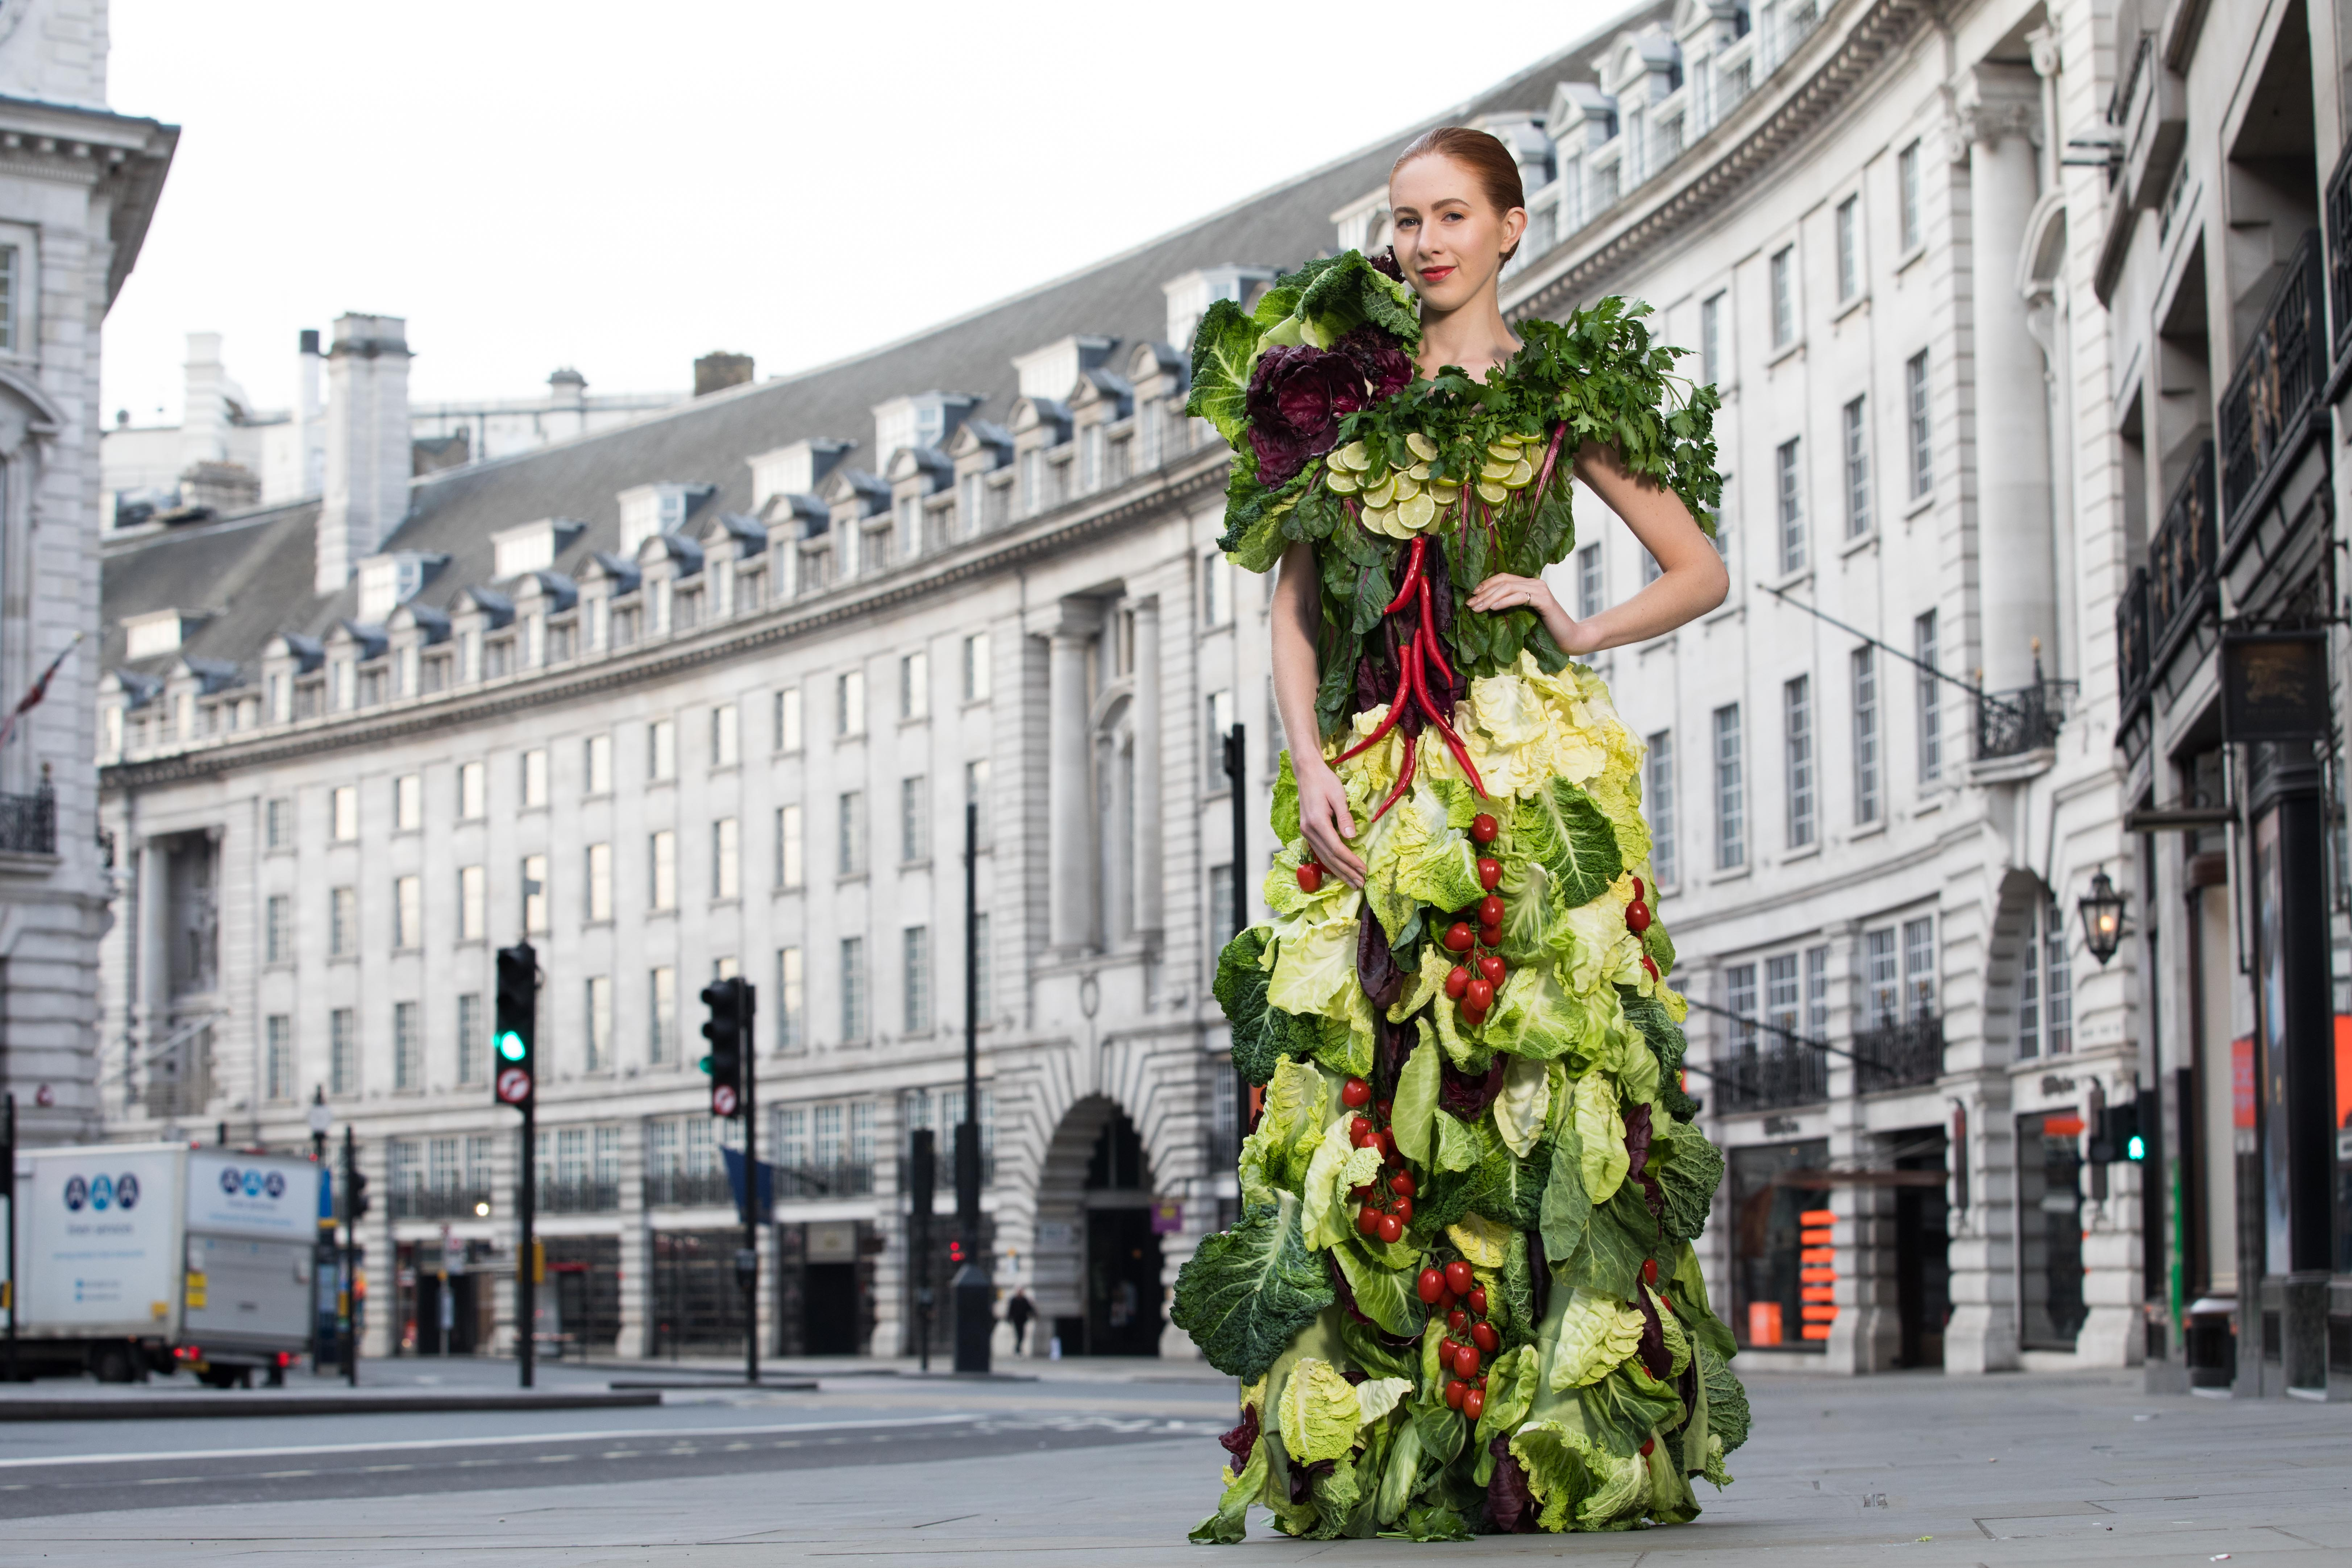 EDITORIAL USE ONLY Scarlett Howard models one of two dresses made entirely from salad ingredients, which have been created to launch the new Greggs summer salad menu, in London's Regent Street. PRESS ASSOCIATION. Picture date: Monday May 22, 2017. The couture inspired salad dresses, which took around 200 hours to create, have been crafted by costume designer Kate Tabor, who has previously made outfits for pop star Katy Perry and the Chemical Brothers. Picture credit should read: David Parry/PA Wire